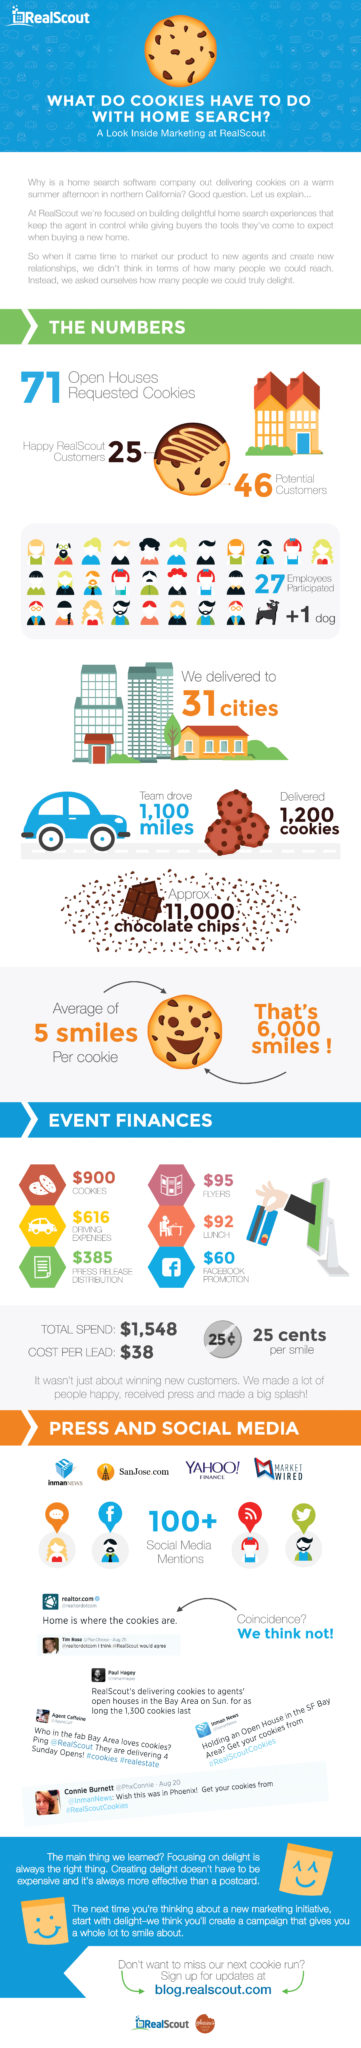 RealScout_Cookies_Infographic